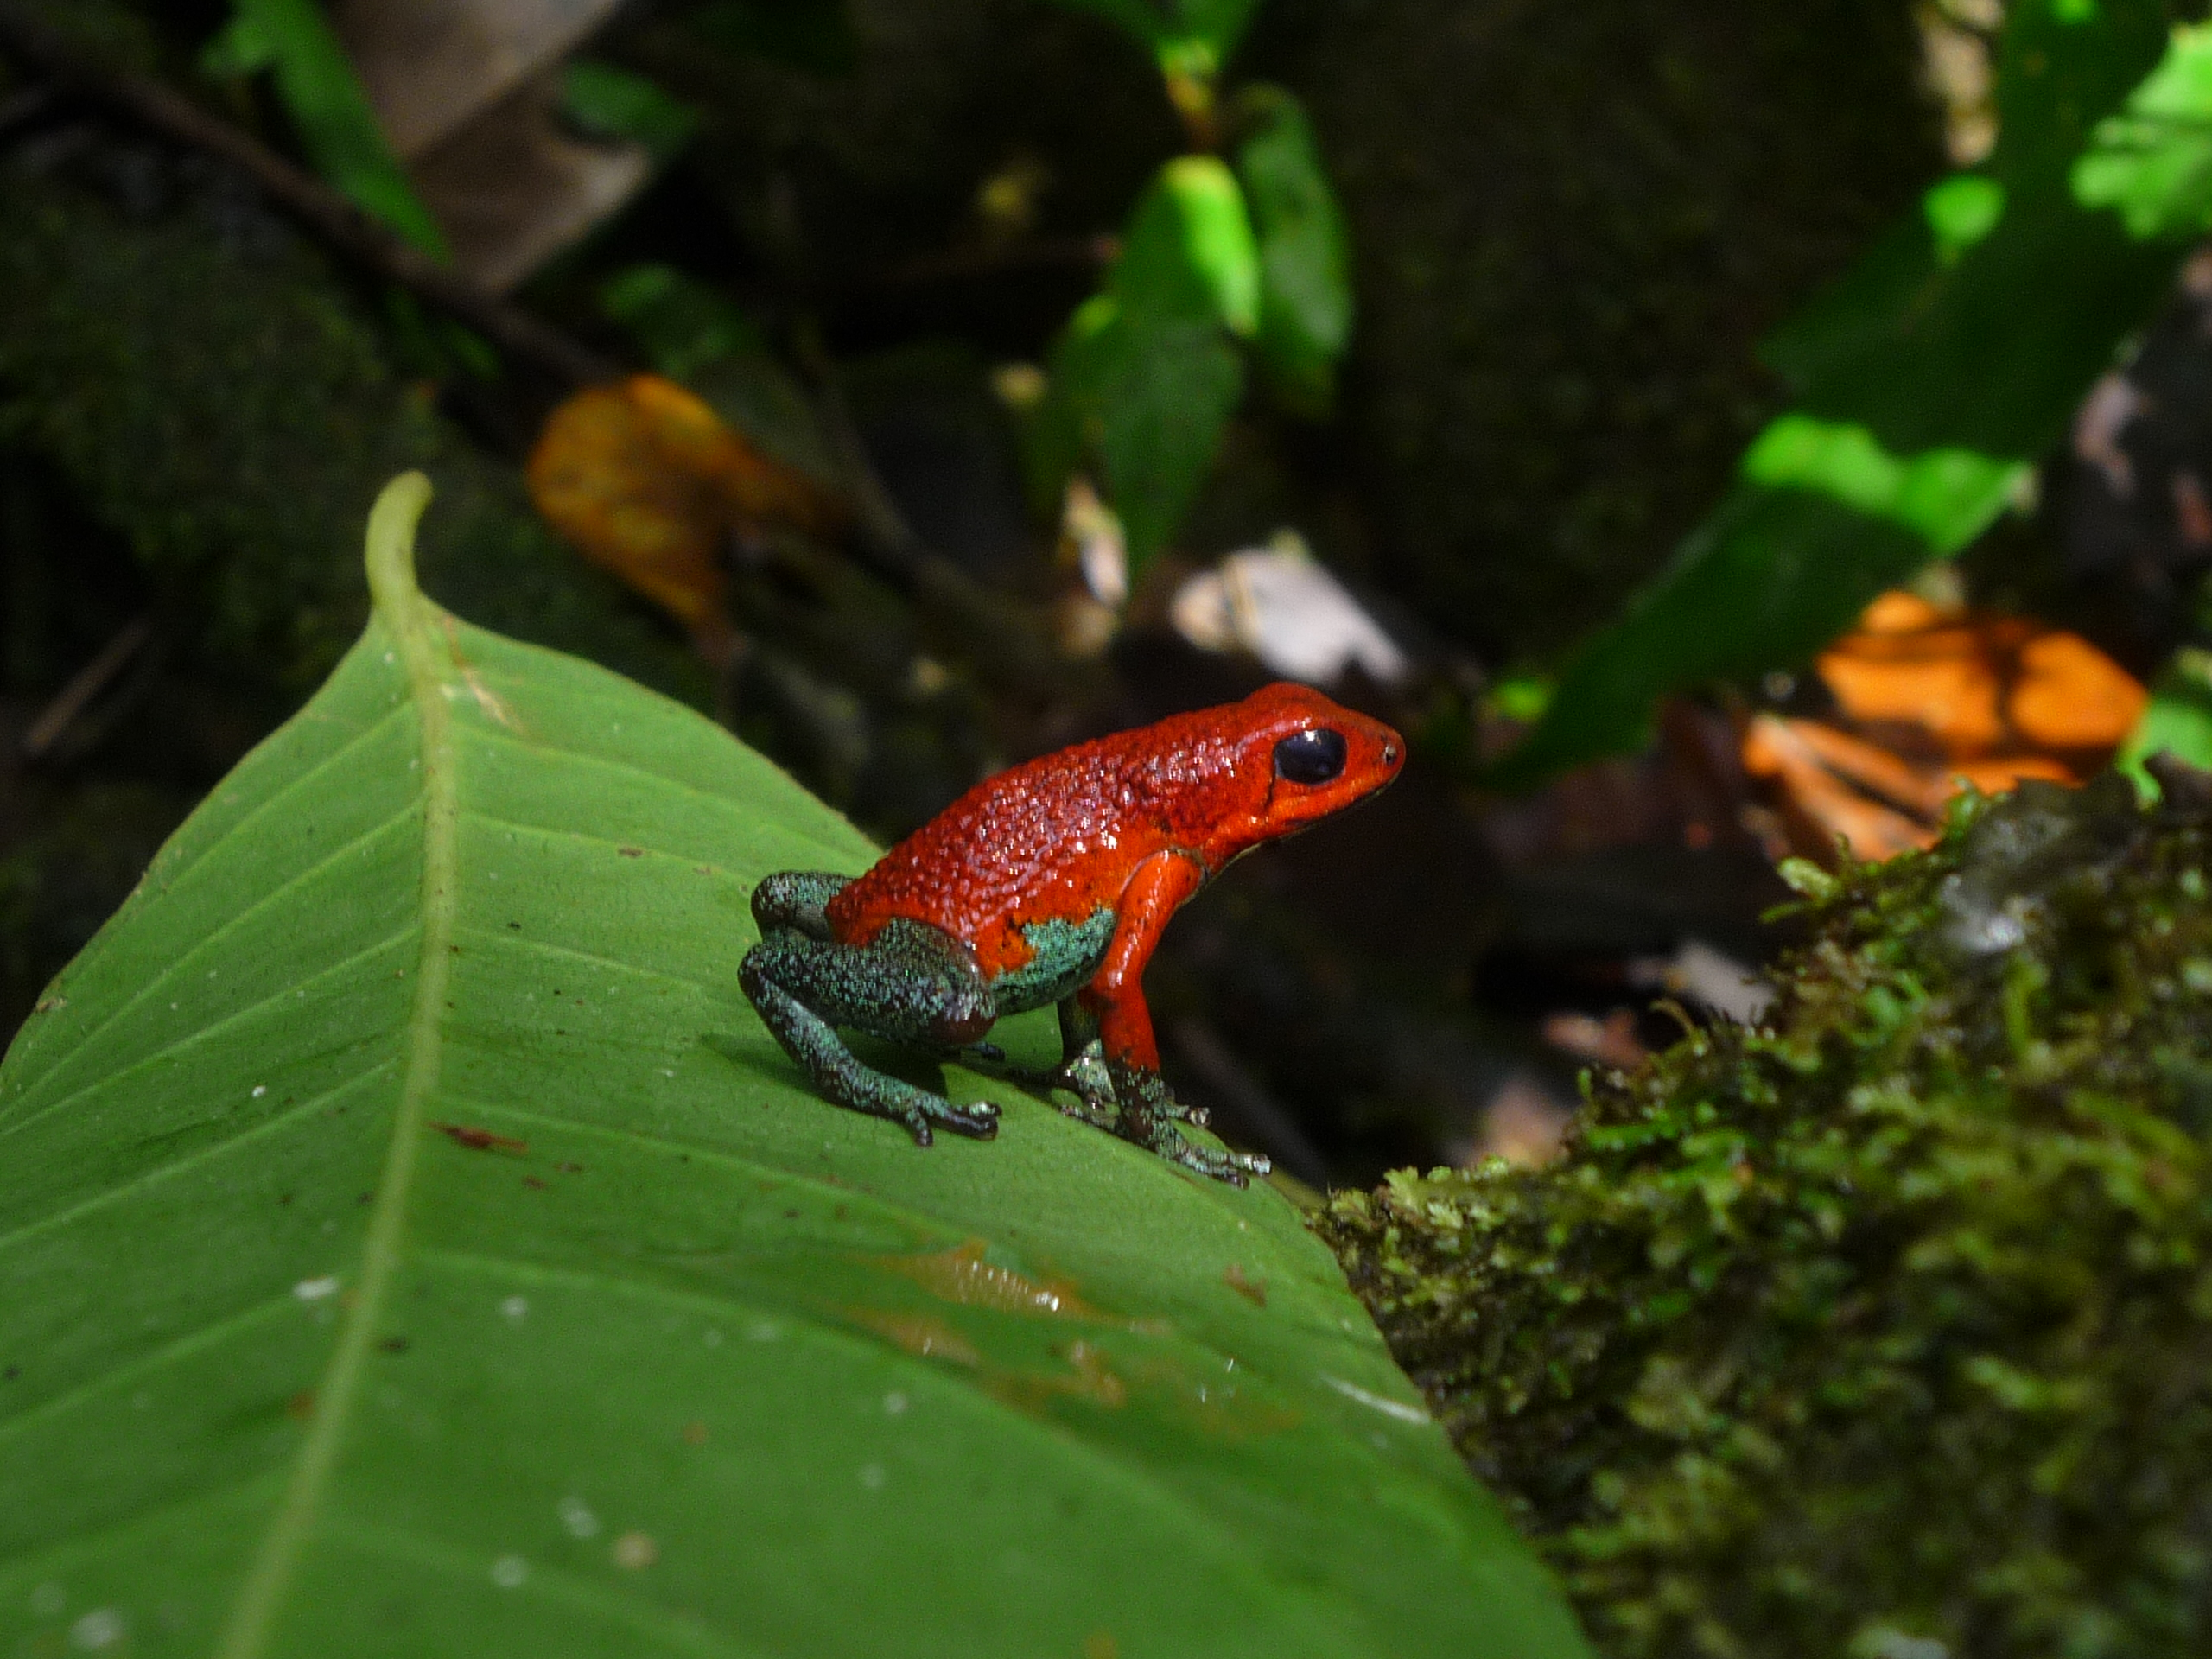 Green poison-dart frog varies mating call to suit situation Are Green Frogs Poisonous